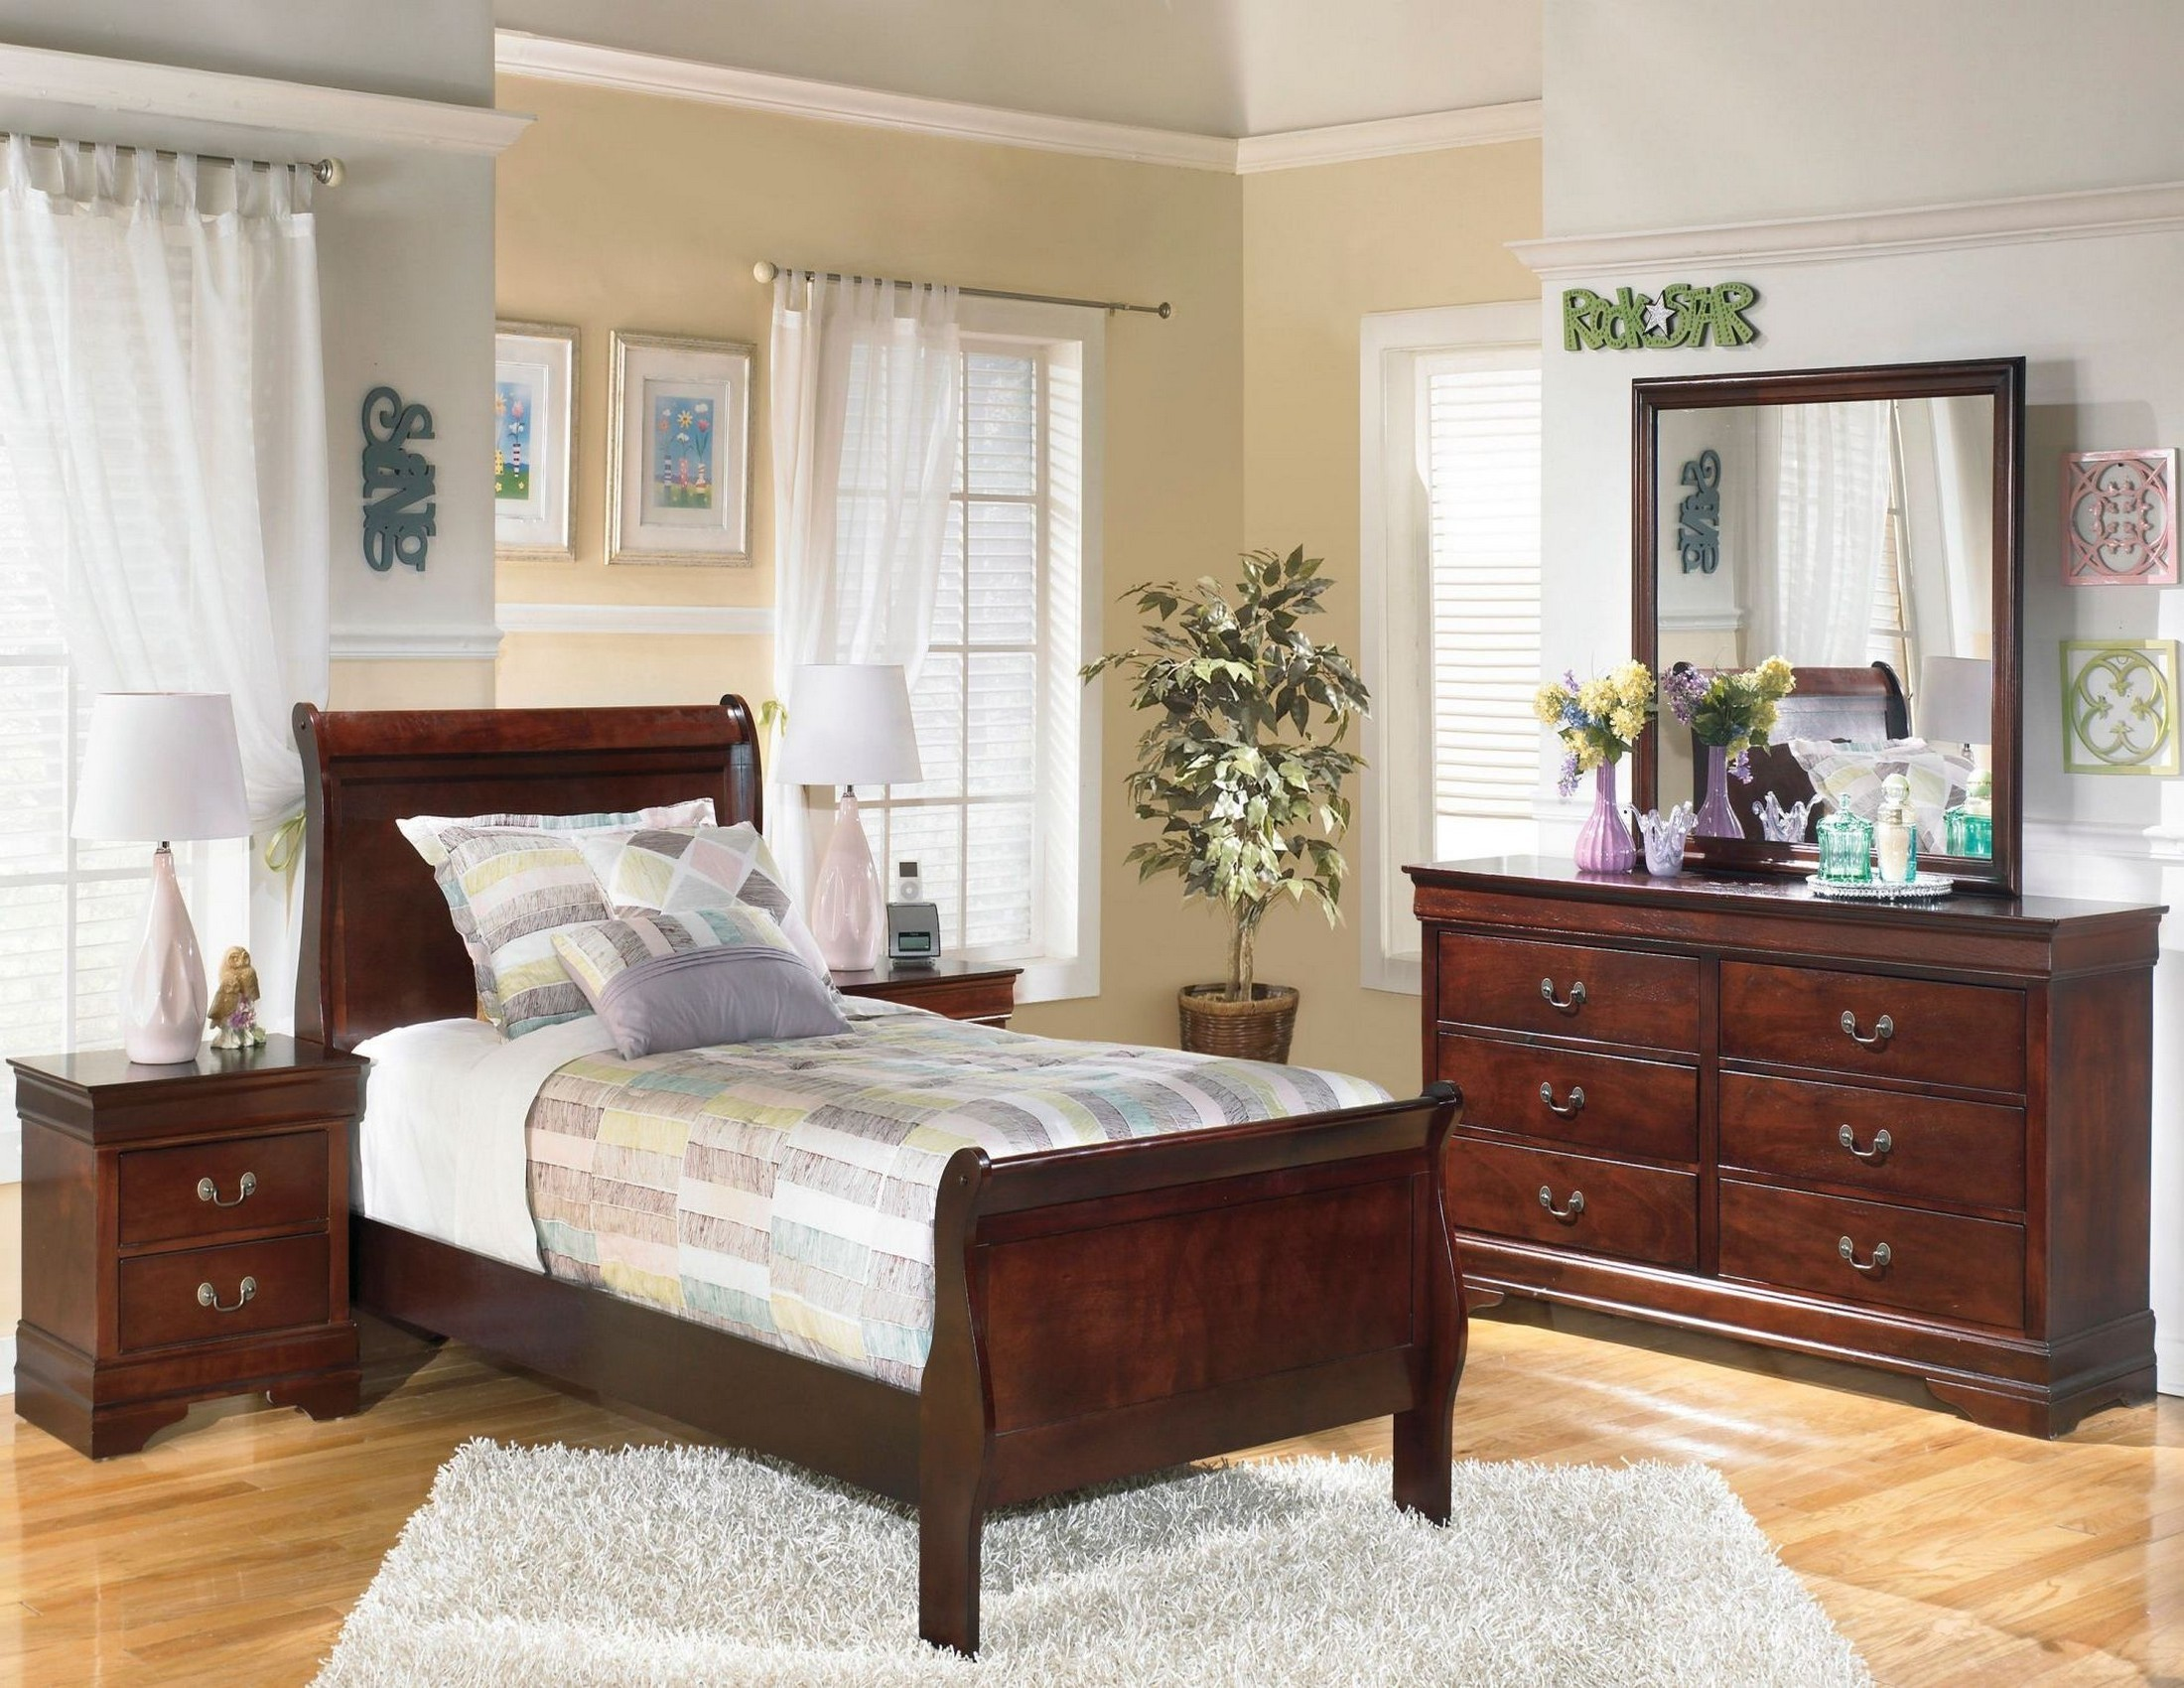 Alisdair youth sleigh bedroom set from ashley b376 53 83 - Ashley furniture sleigh bedroom set ...